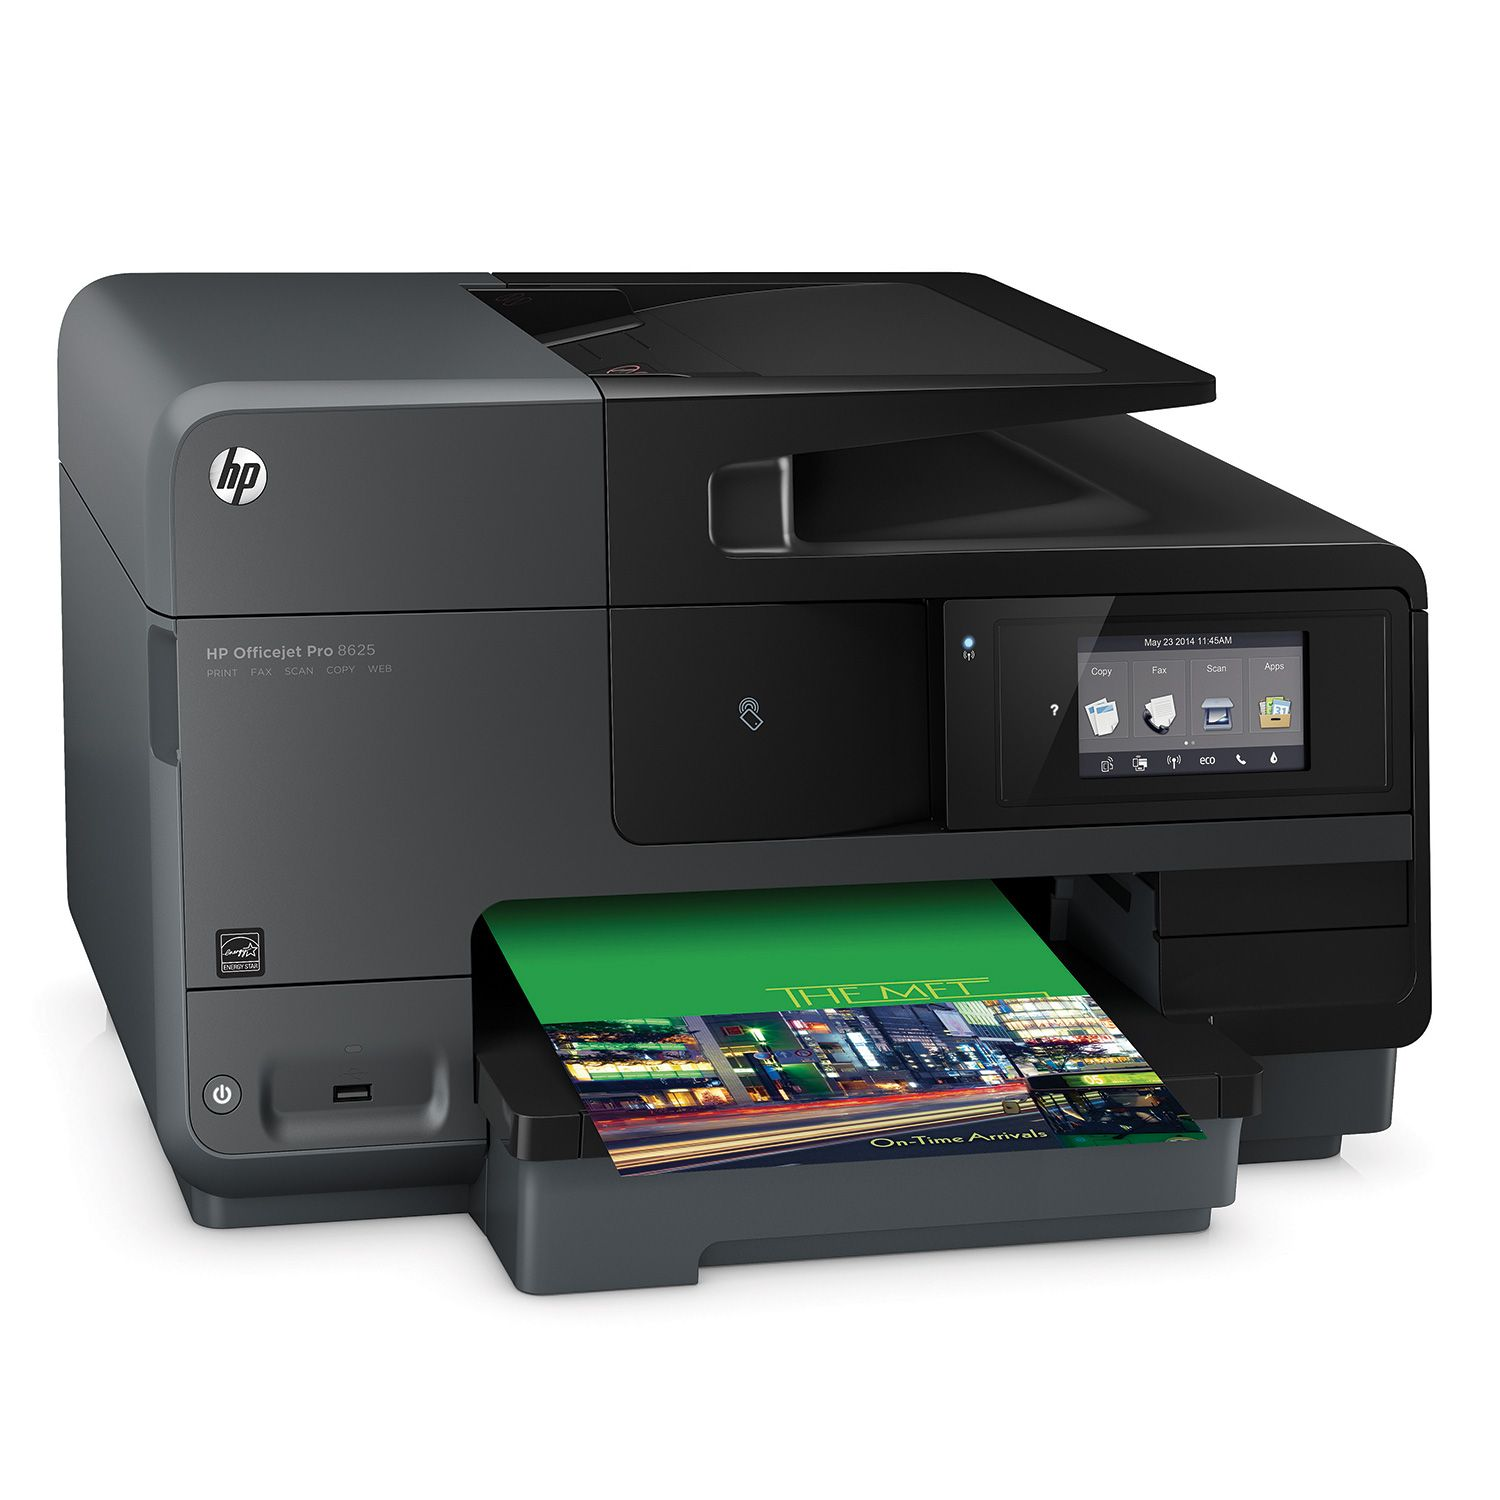 HP OfficeJet Pro 8625 e-All-in-One by HP